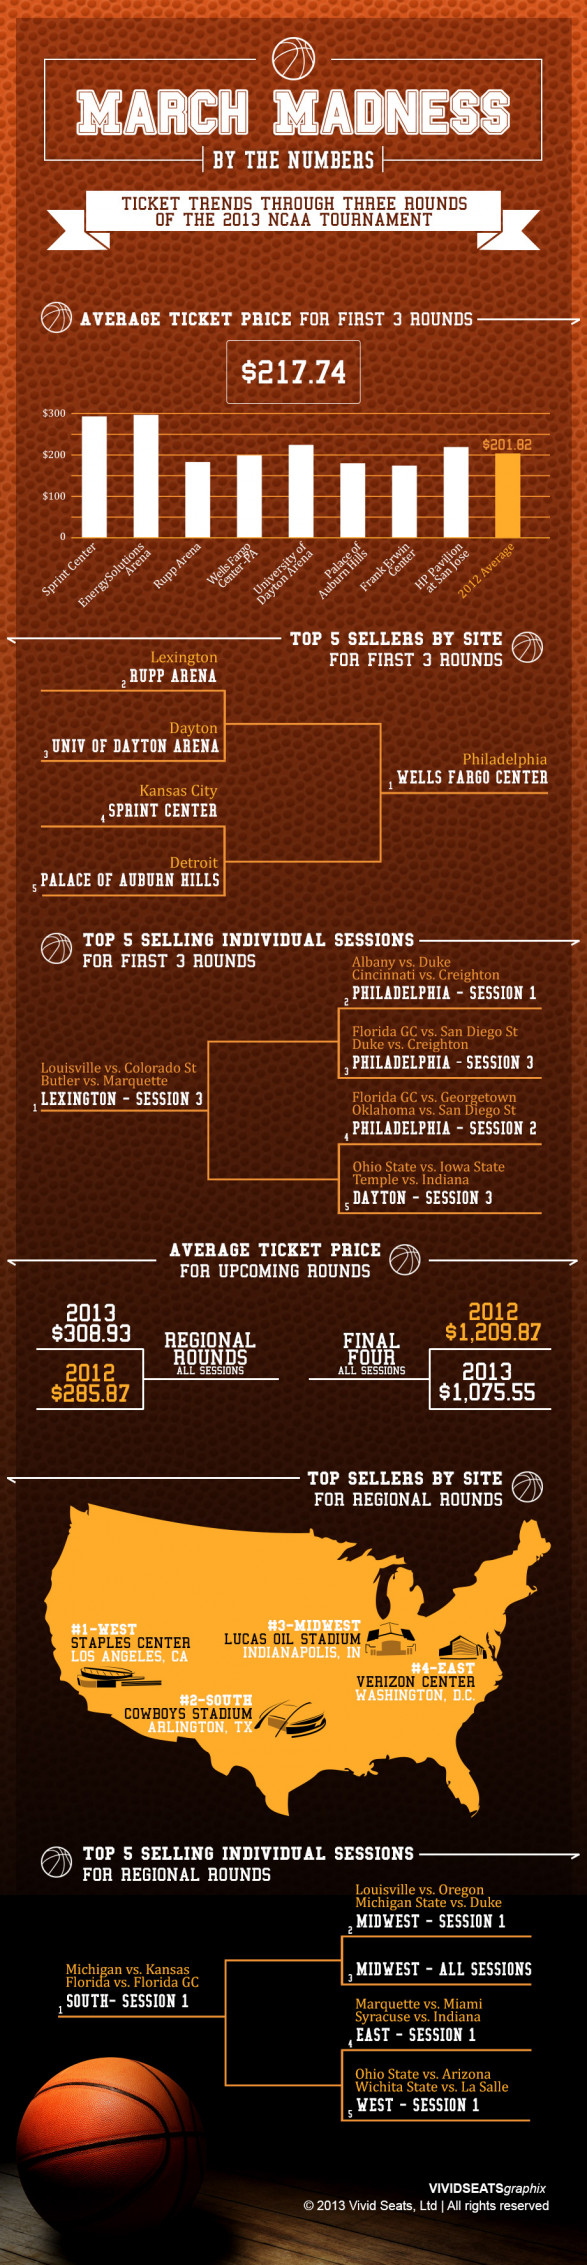 March Madness 2013 By the Numbers